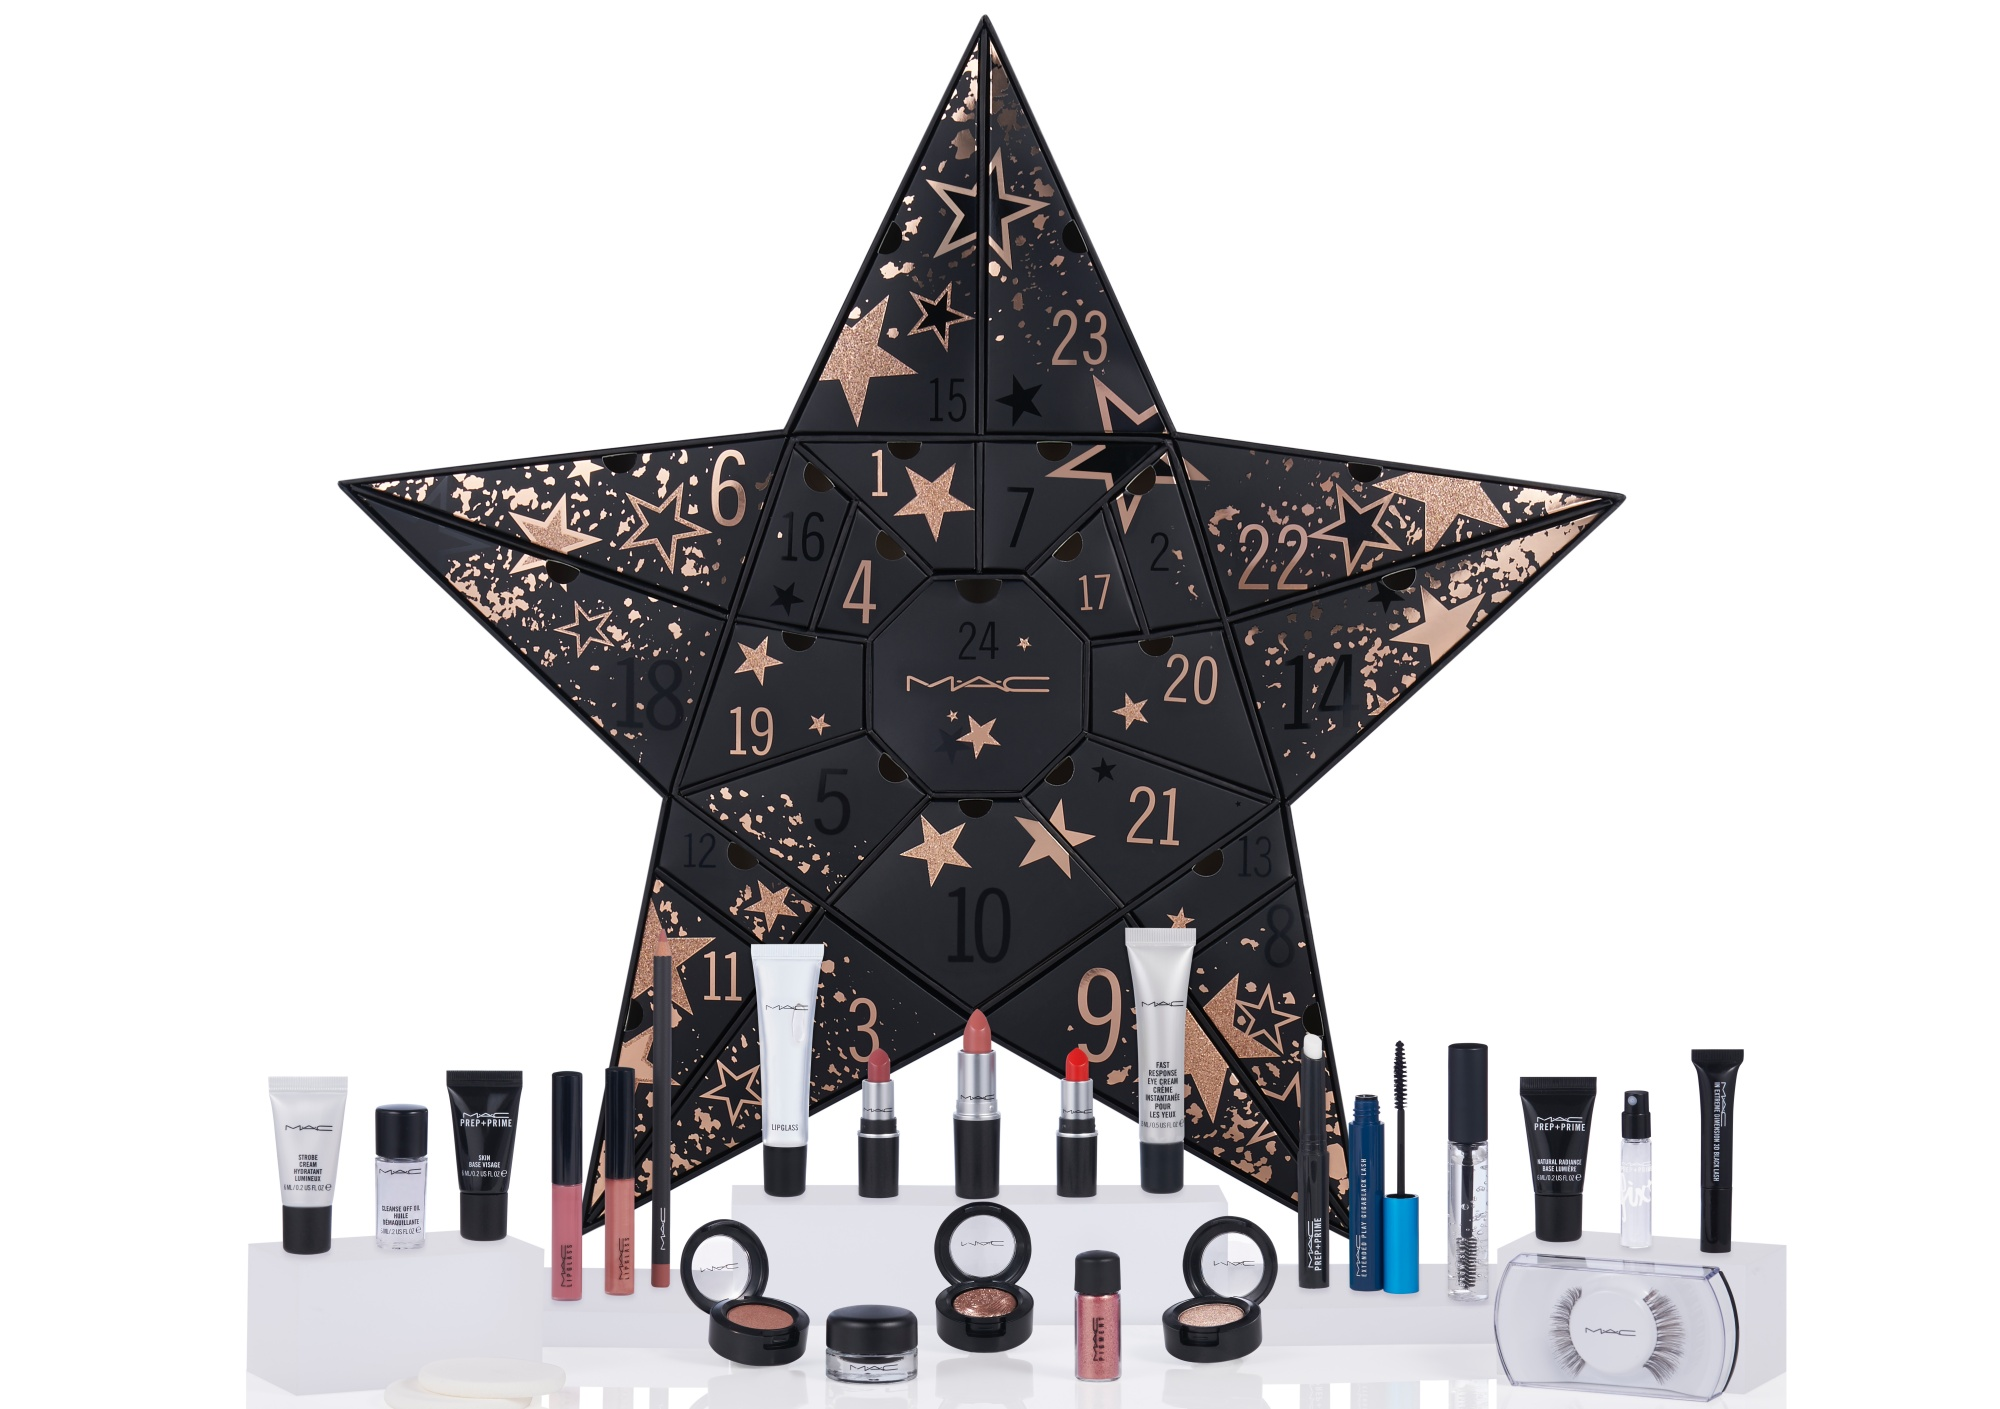 MAC Cosmetics Beauty Advent Calendar 2019 , Contents Revelaed